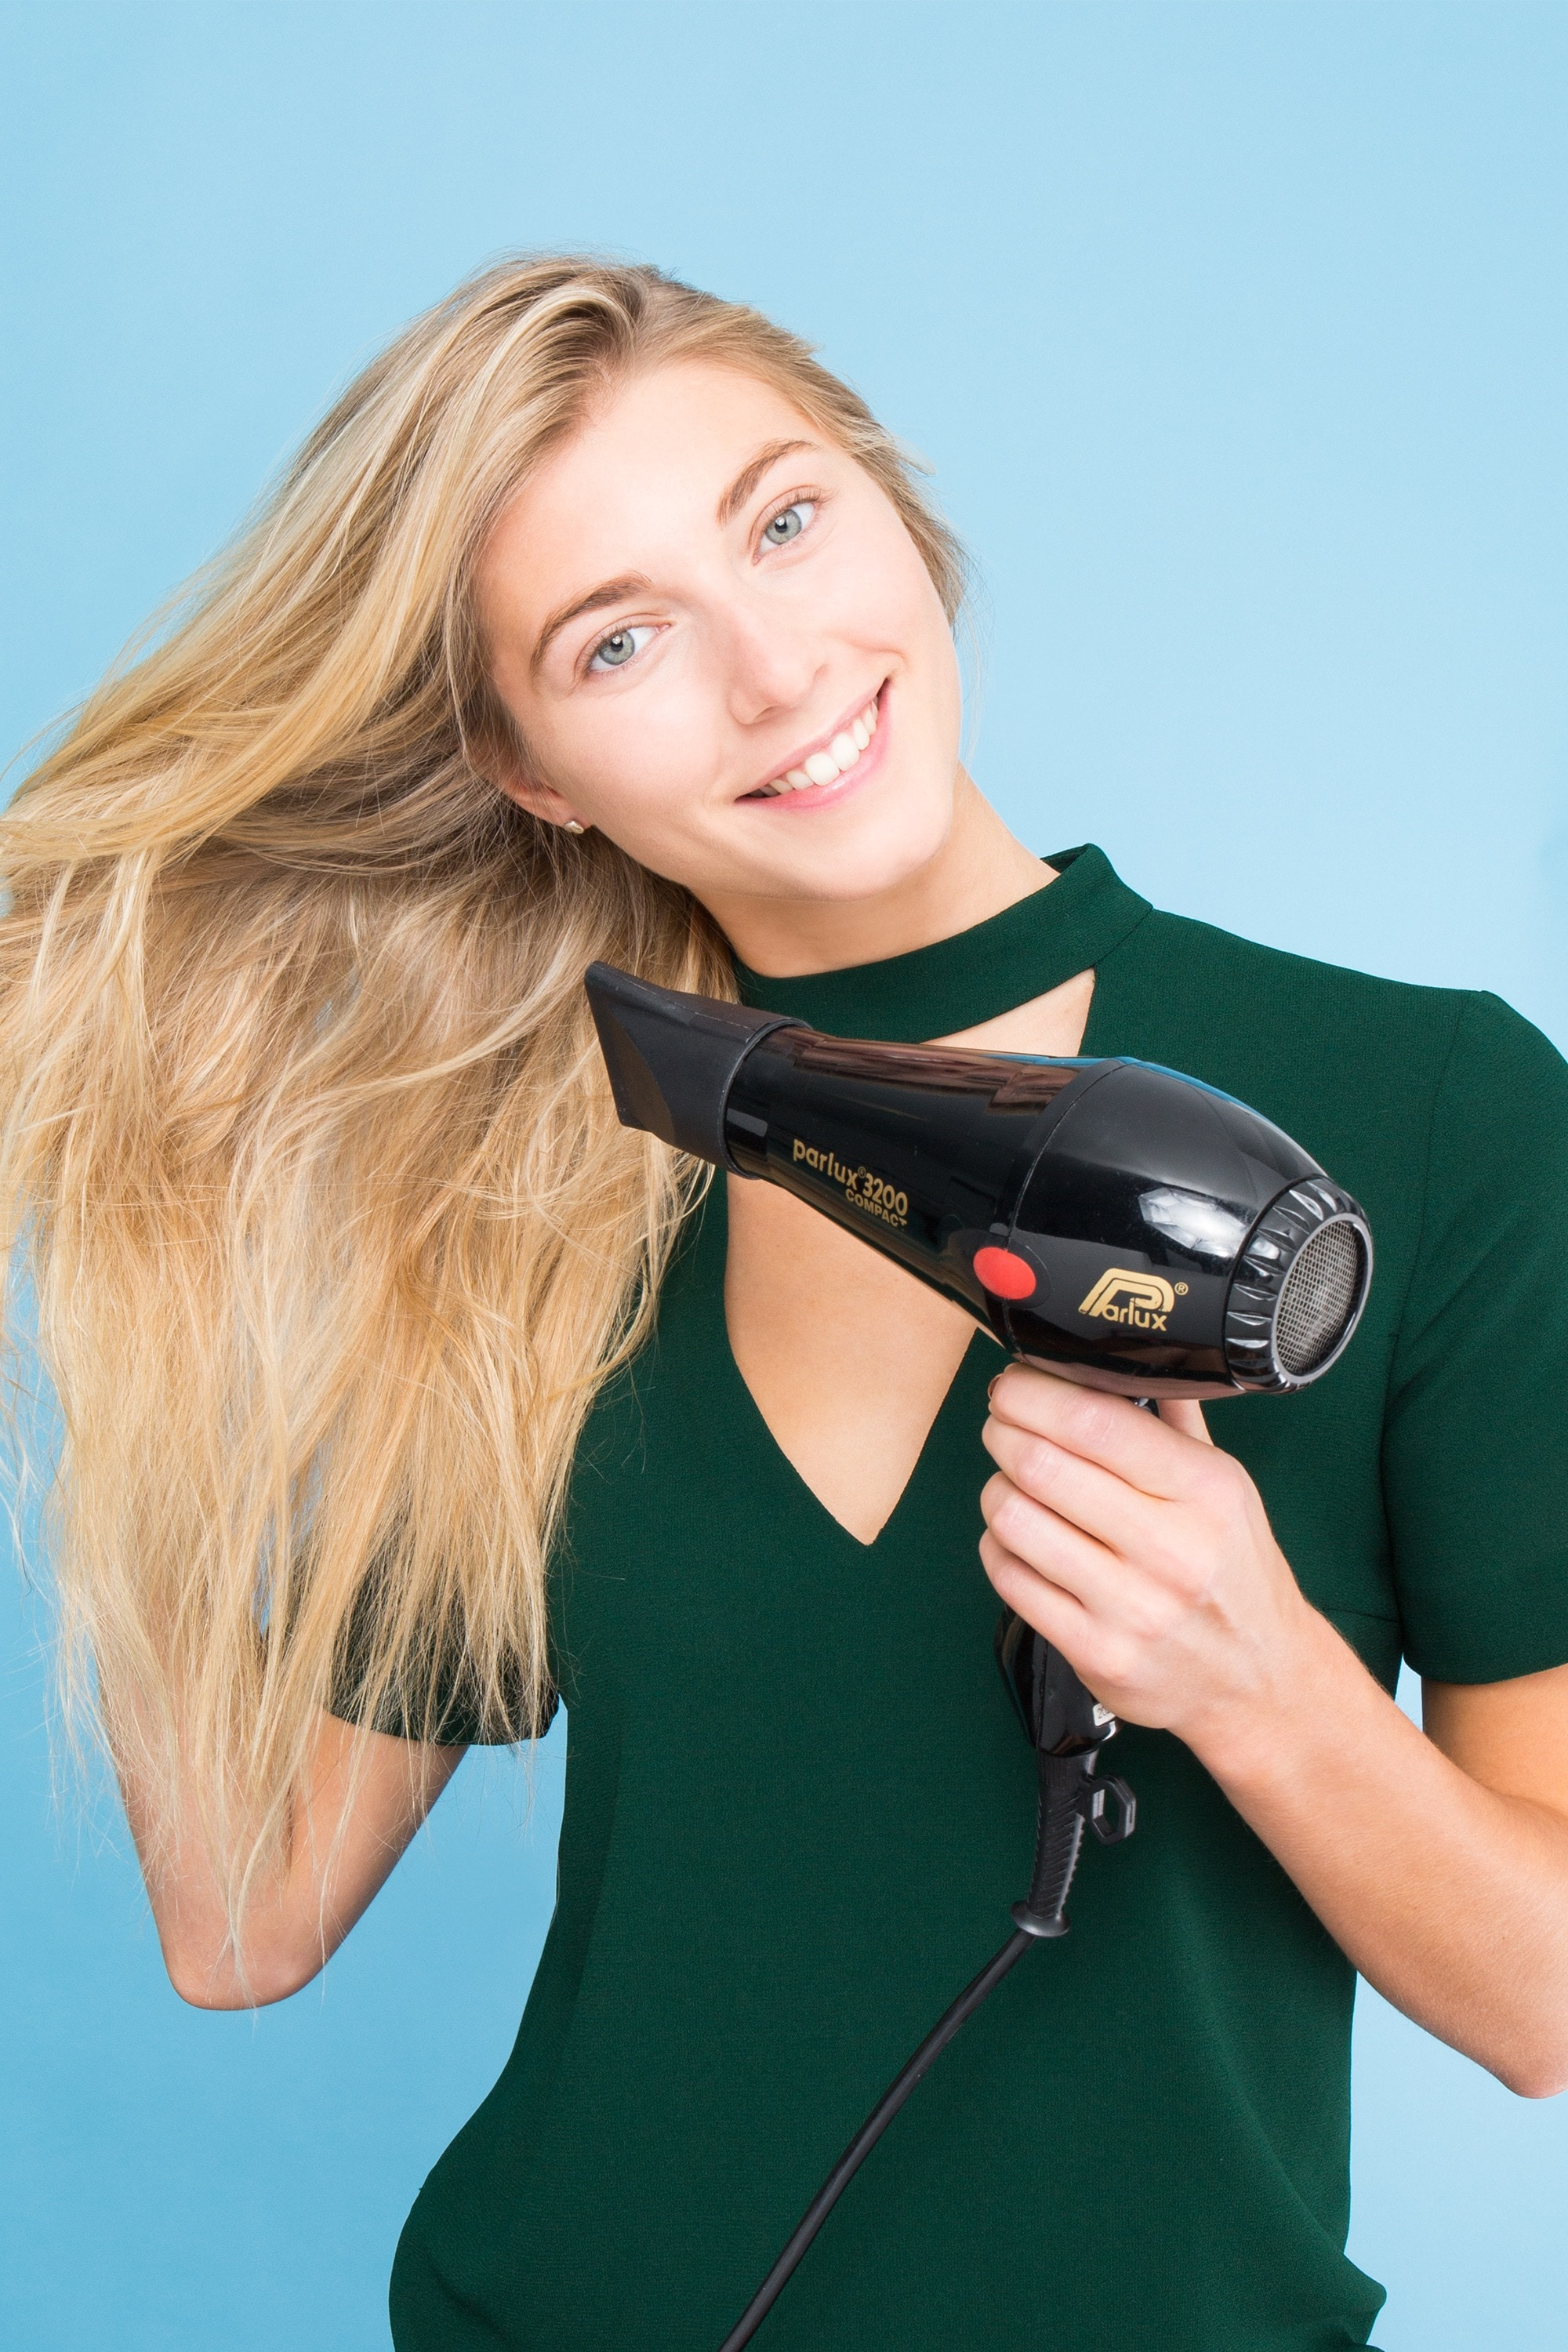 a blonde woman hairdrying her long hair in a green suit